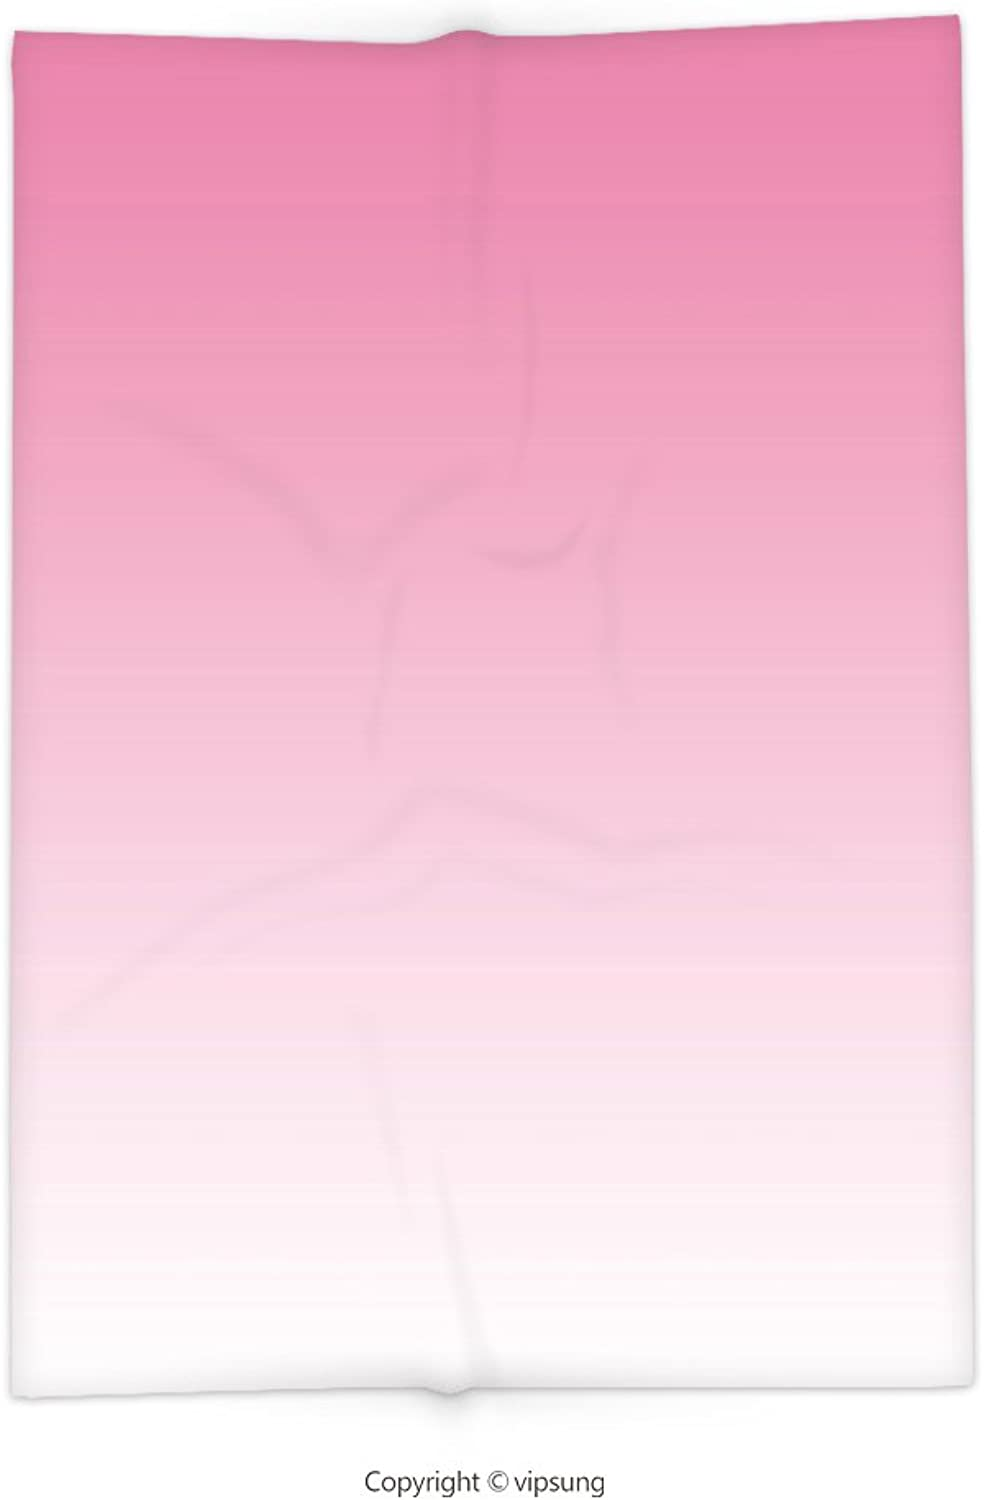 Vipsung Throw Blanket with Ombre Dreamy Light Pink Waterfall Inspired Modern Digital Print Girls Room Decorations Light Pink Super Soft and Cozy Fleece Blanket